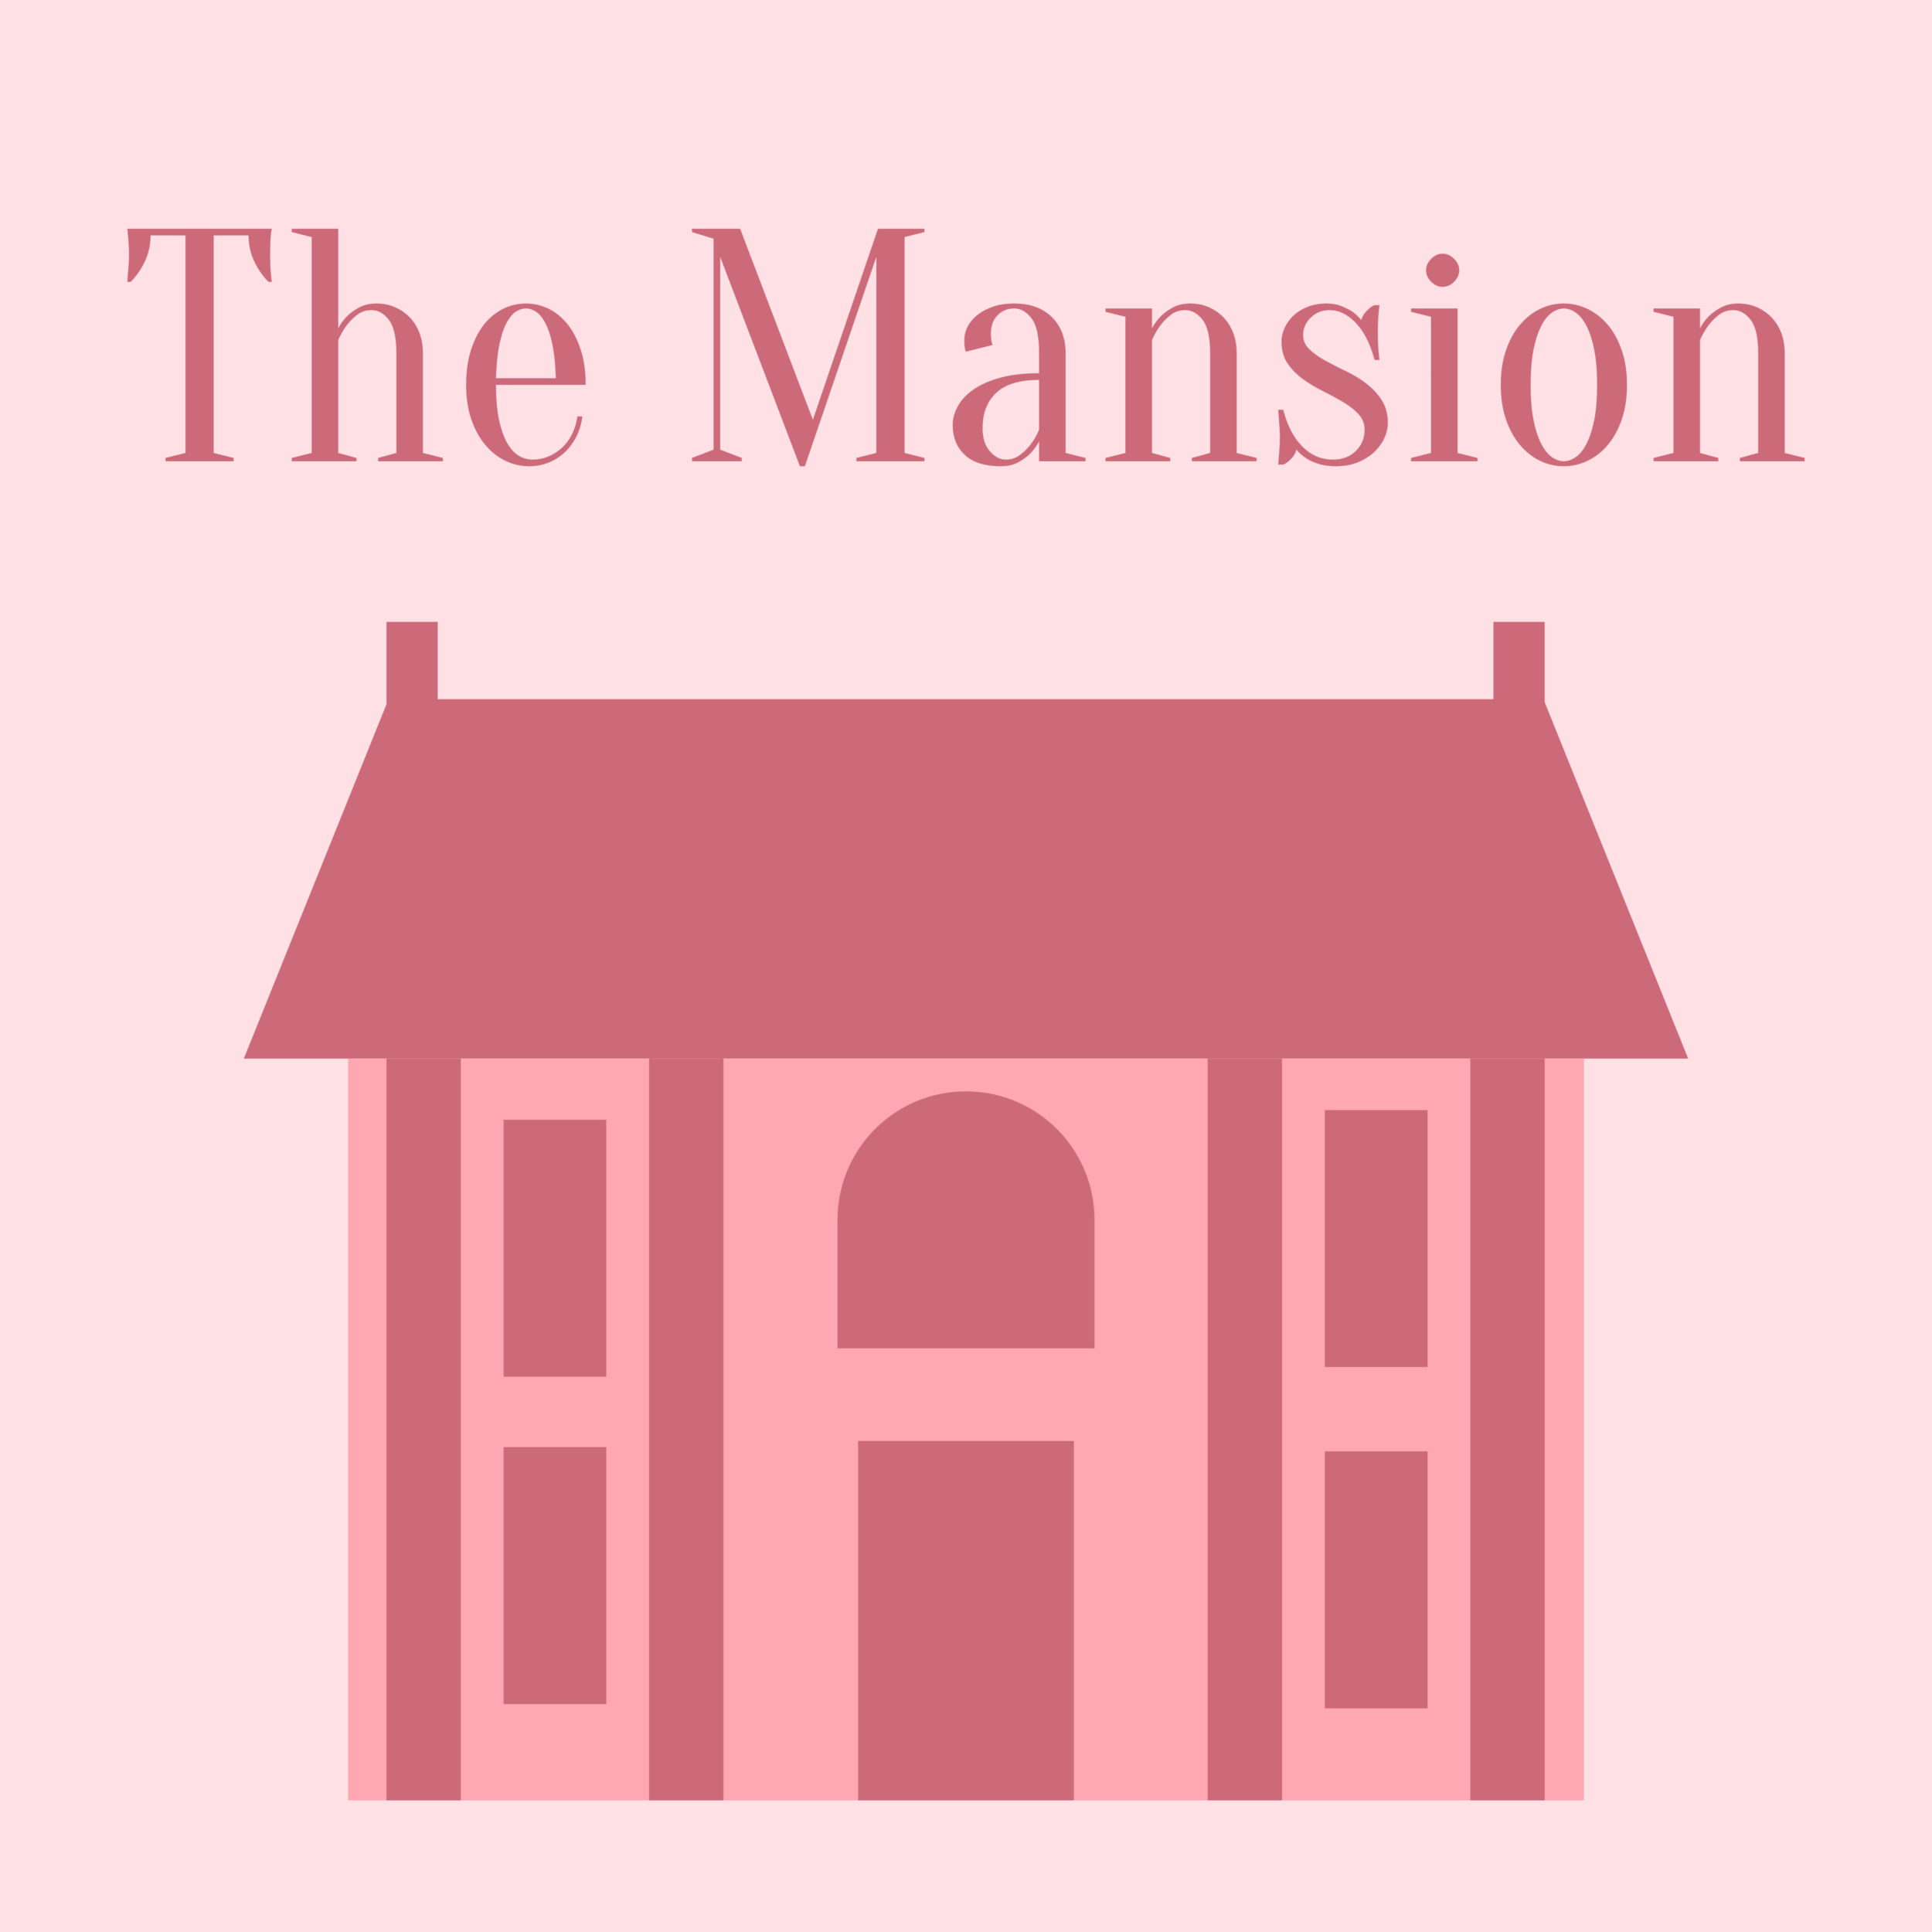 The Mansion.PNG